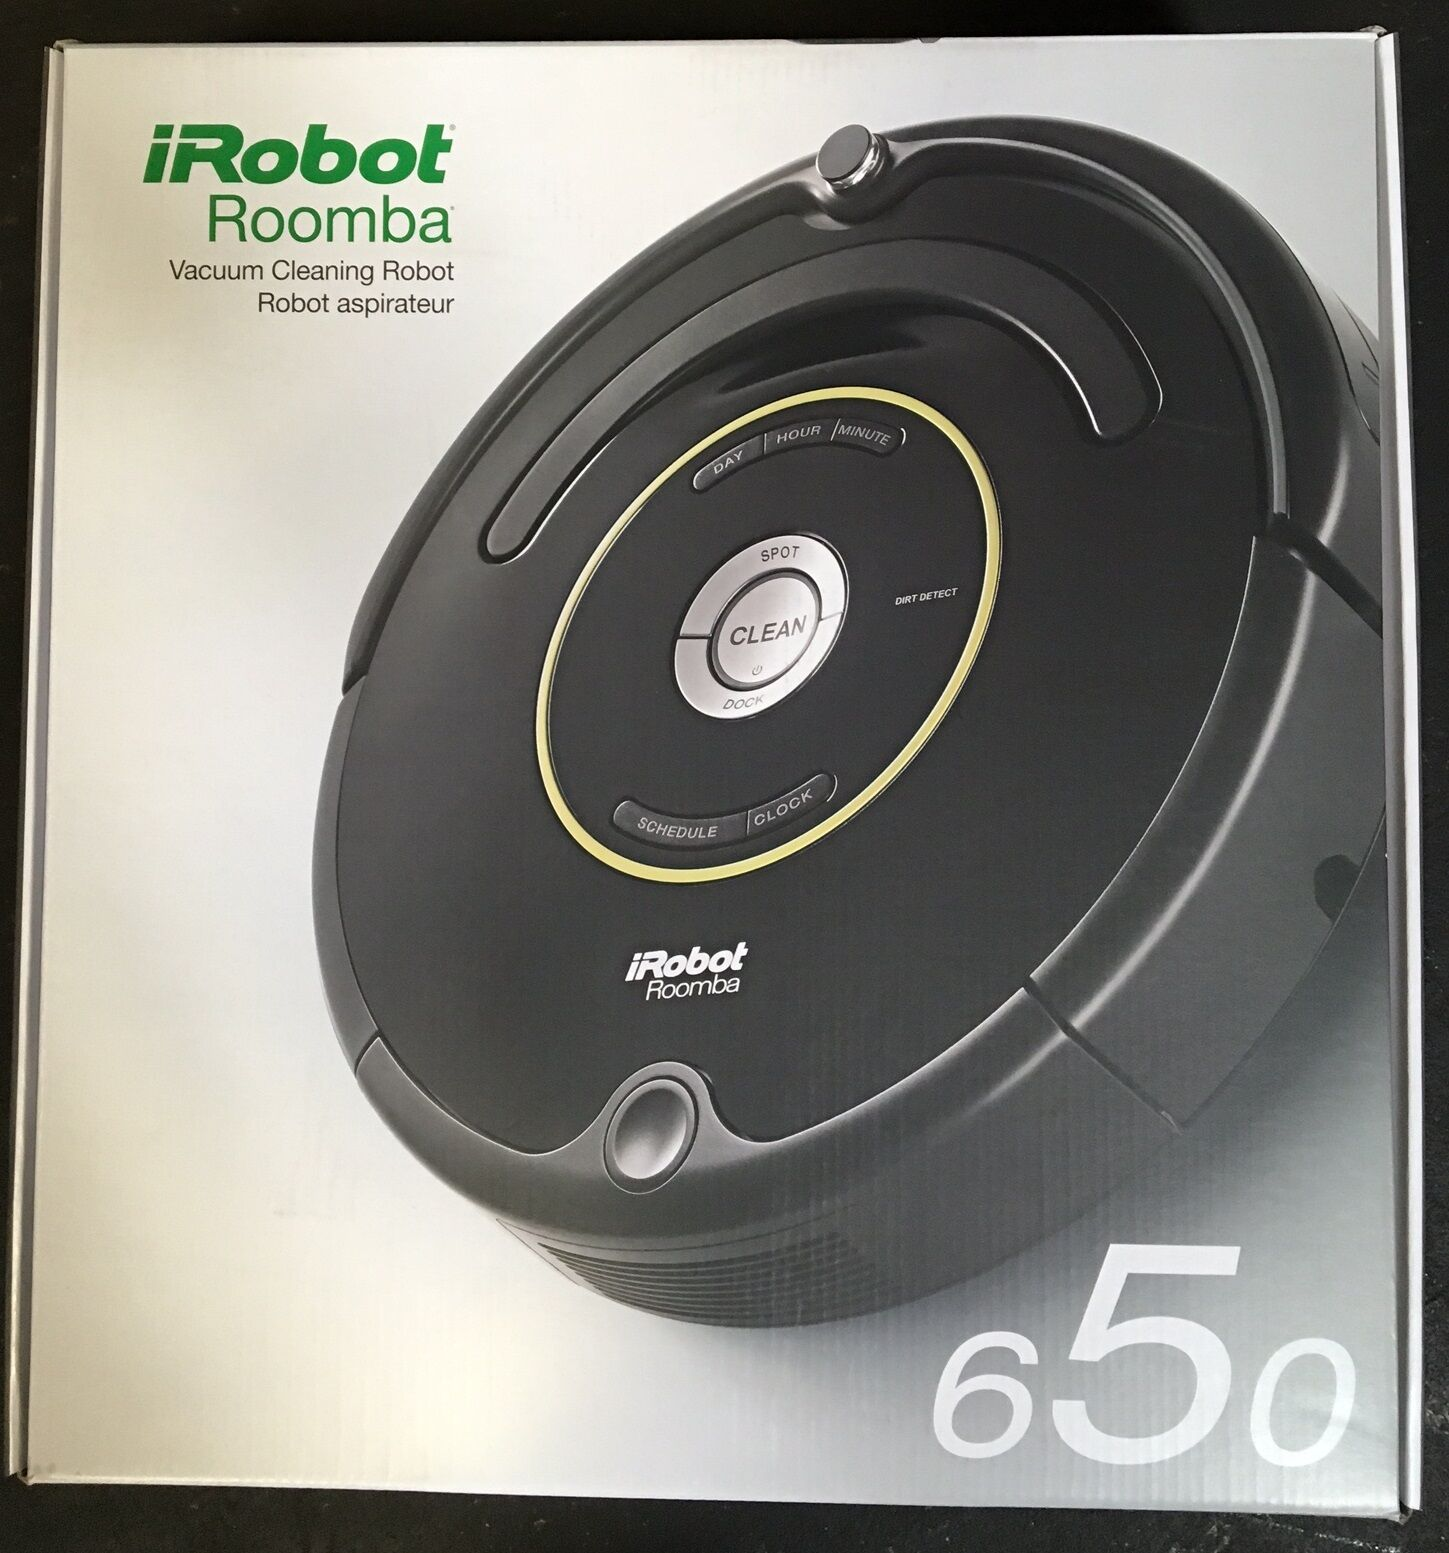 roomba vacuum cleaner irobot roomba 650 vacuum cleaning robot brand new 10367